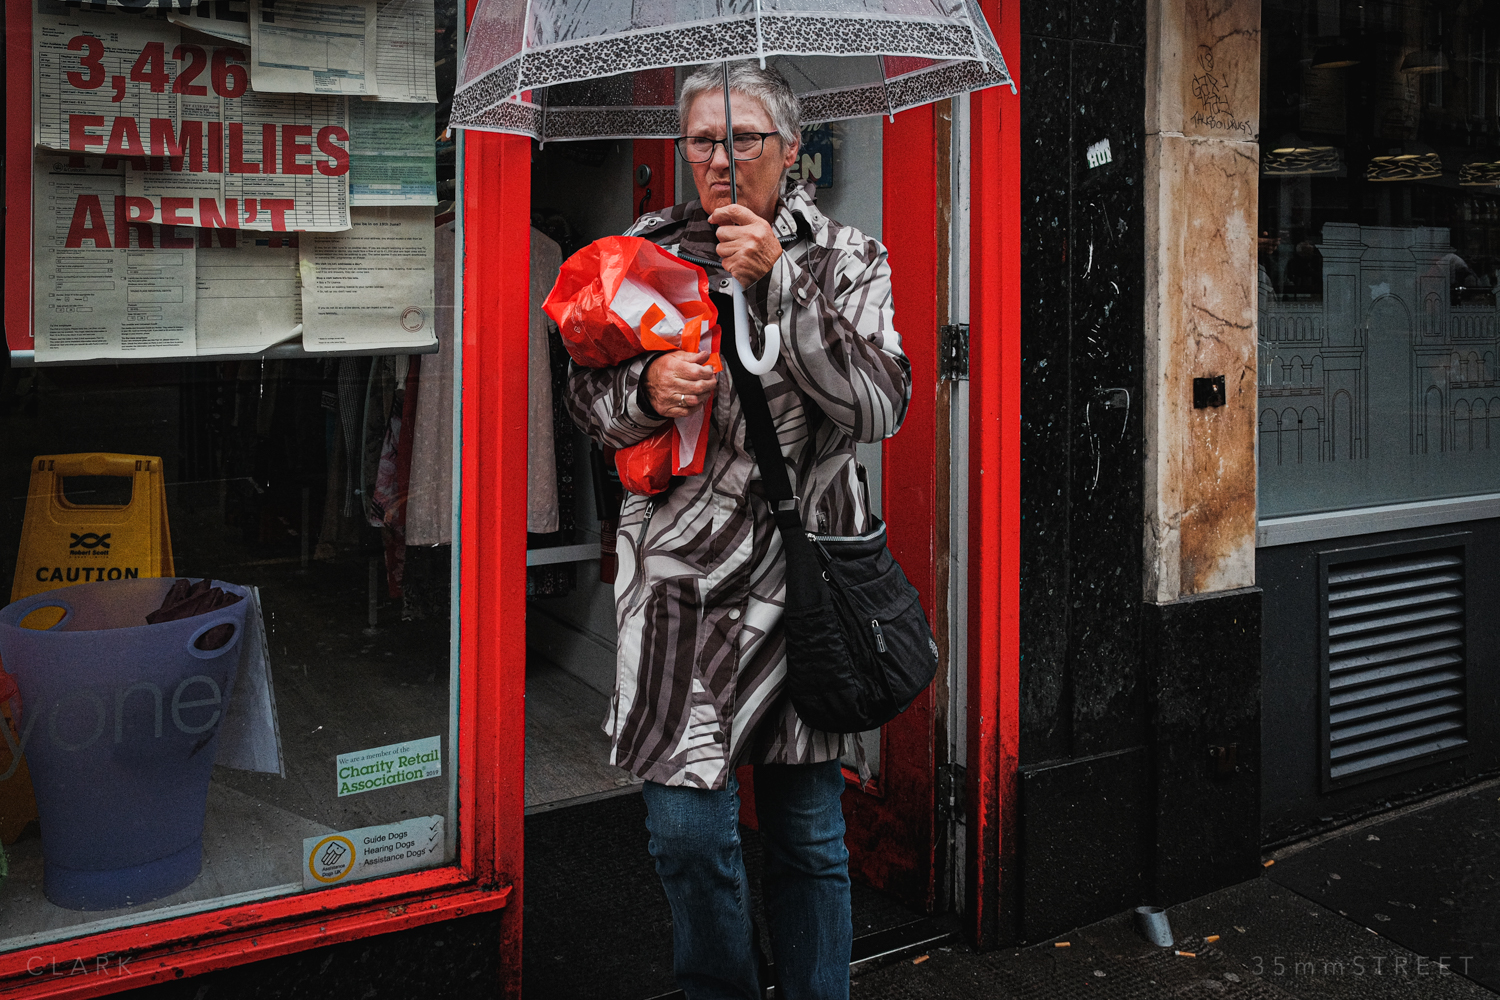 012_35mmStreet-Rainy-Friday-Glasgow.jpg